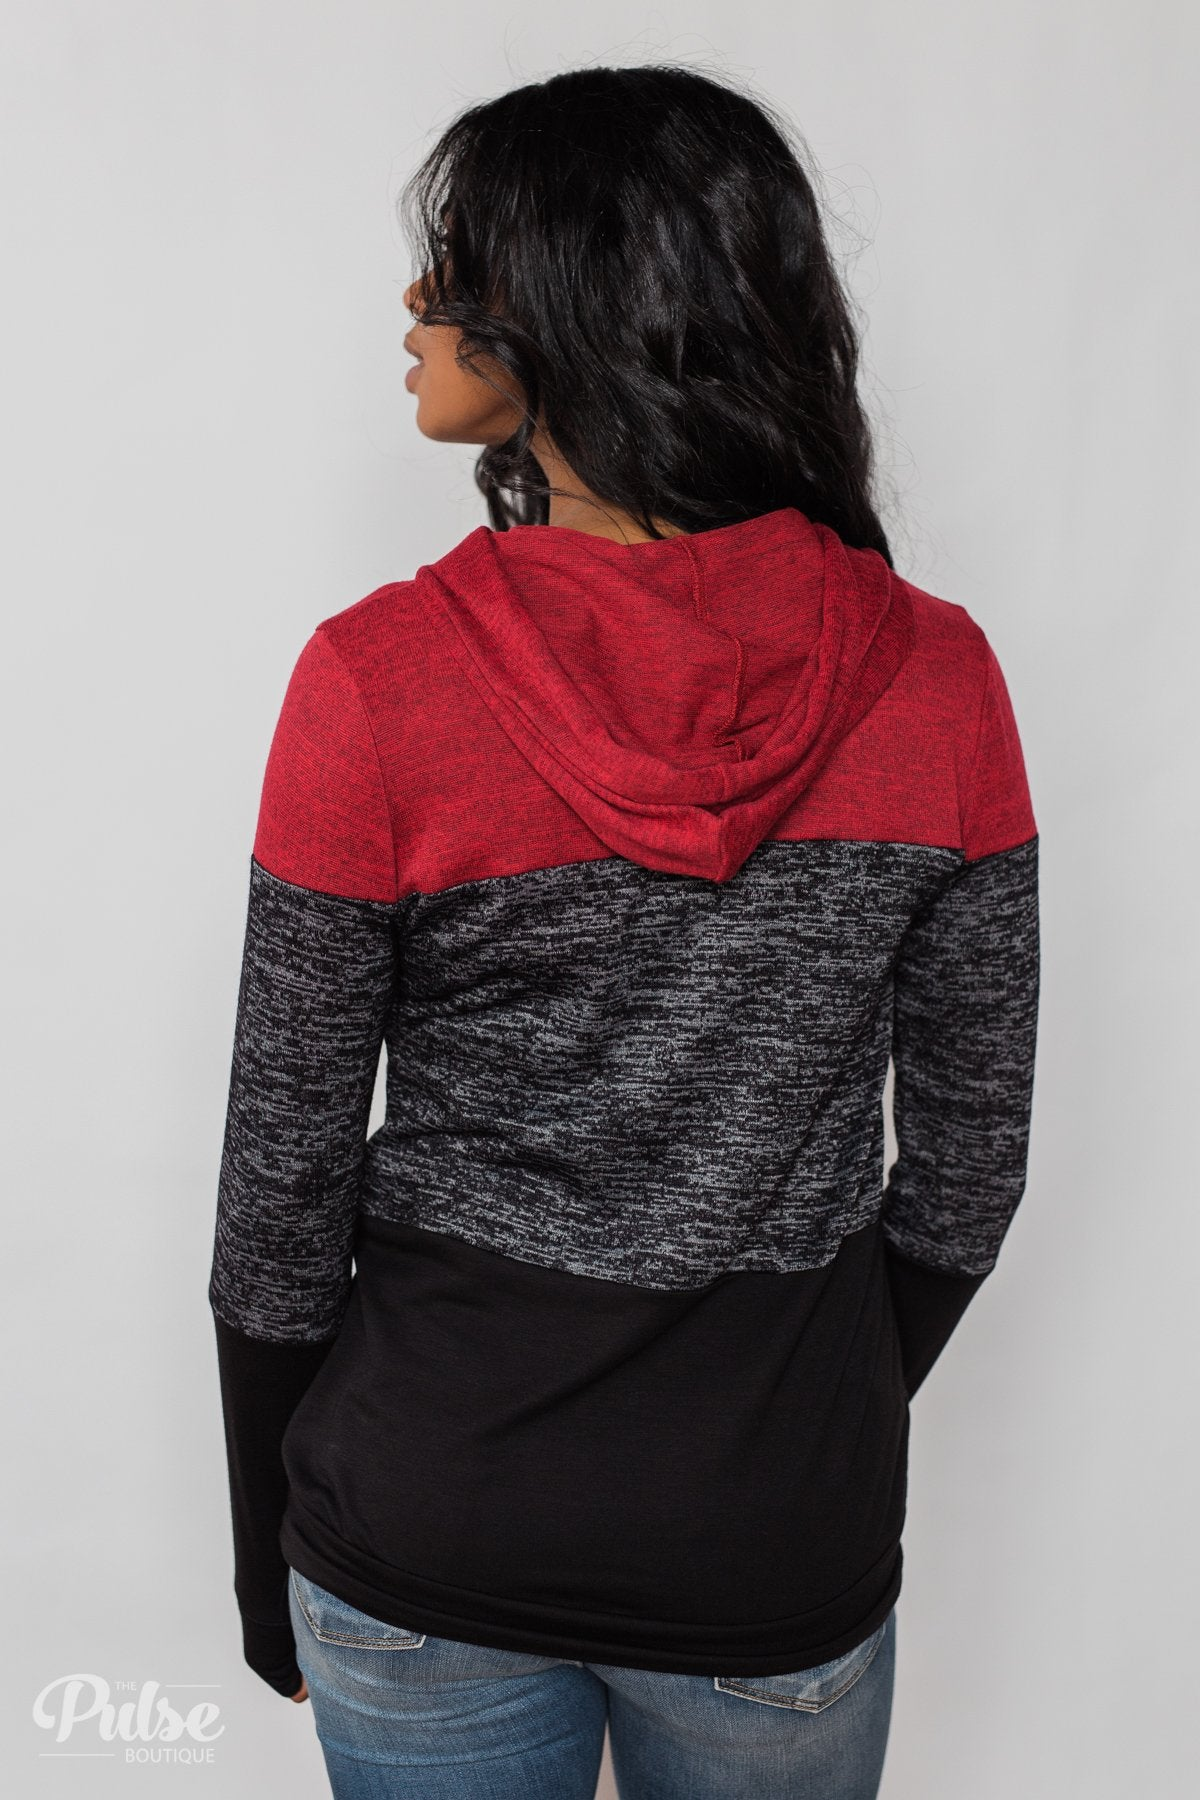 Come Together Color Block Hoodie - Red & Black